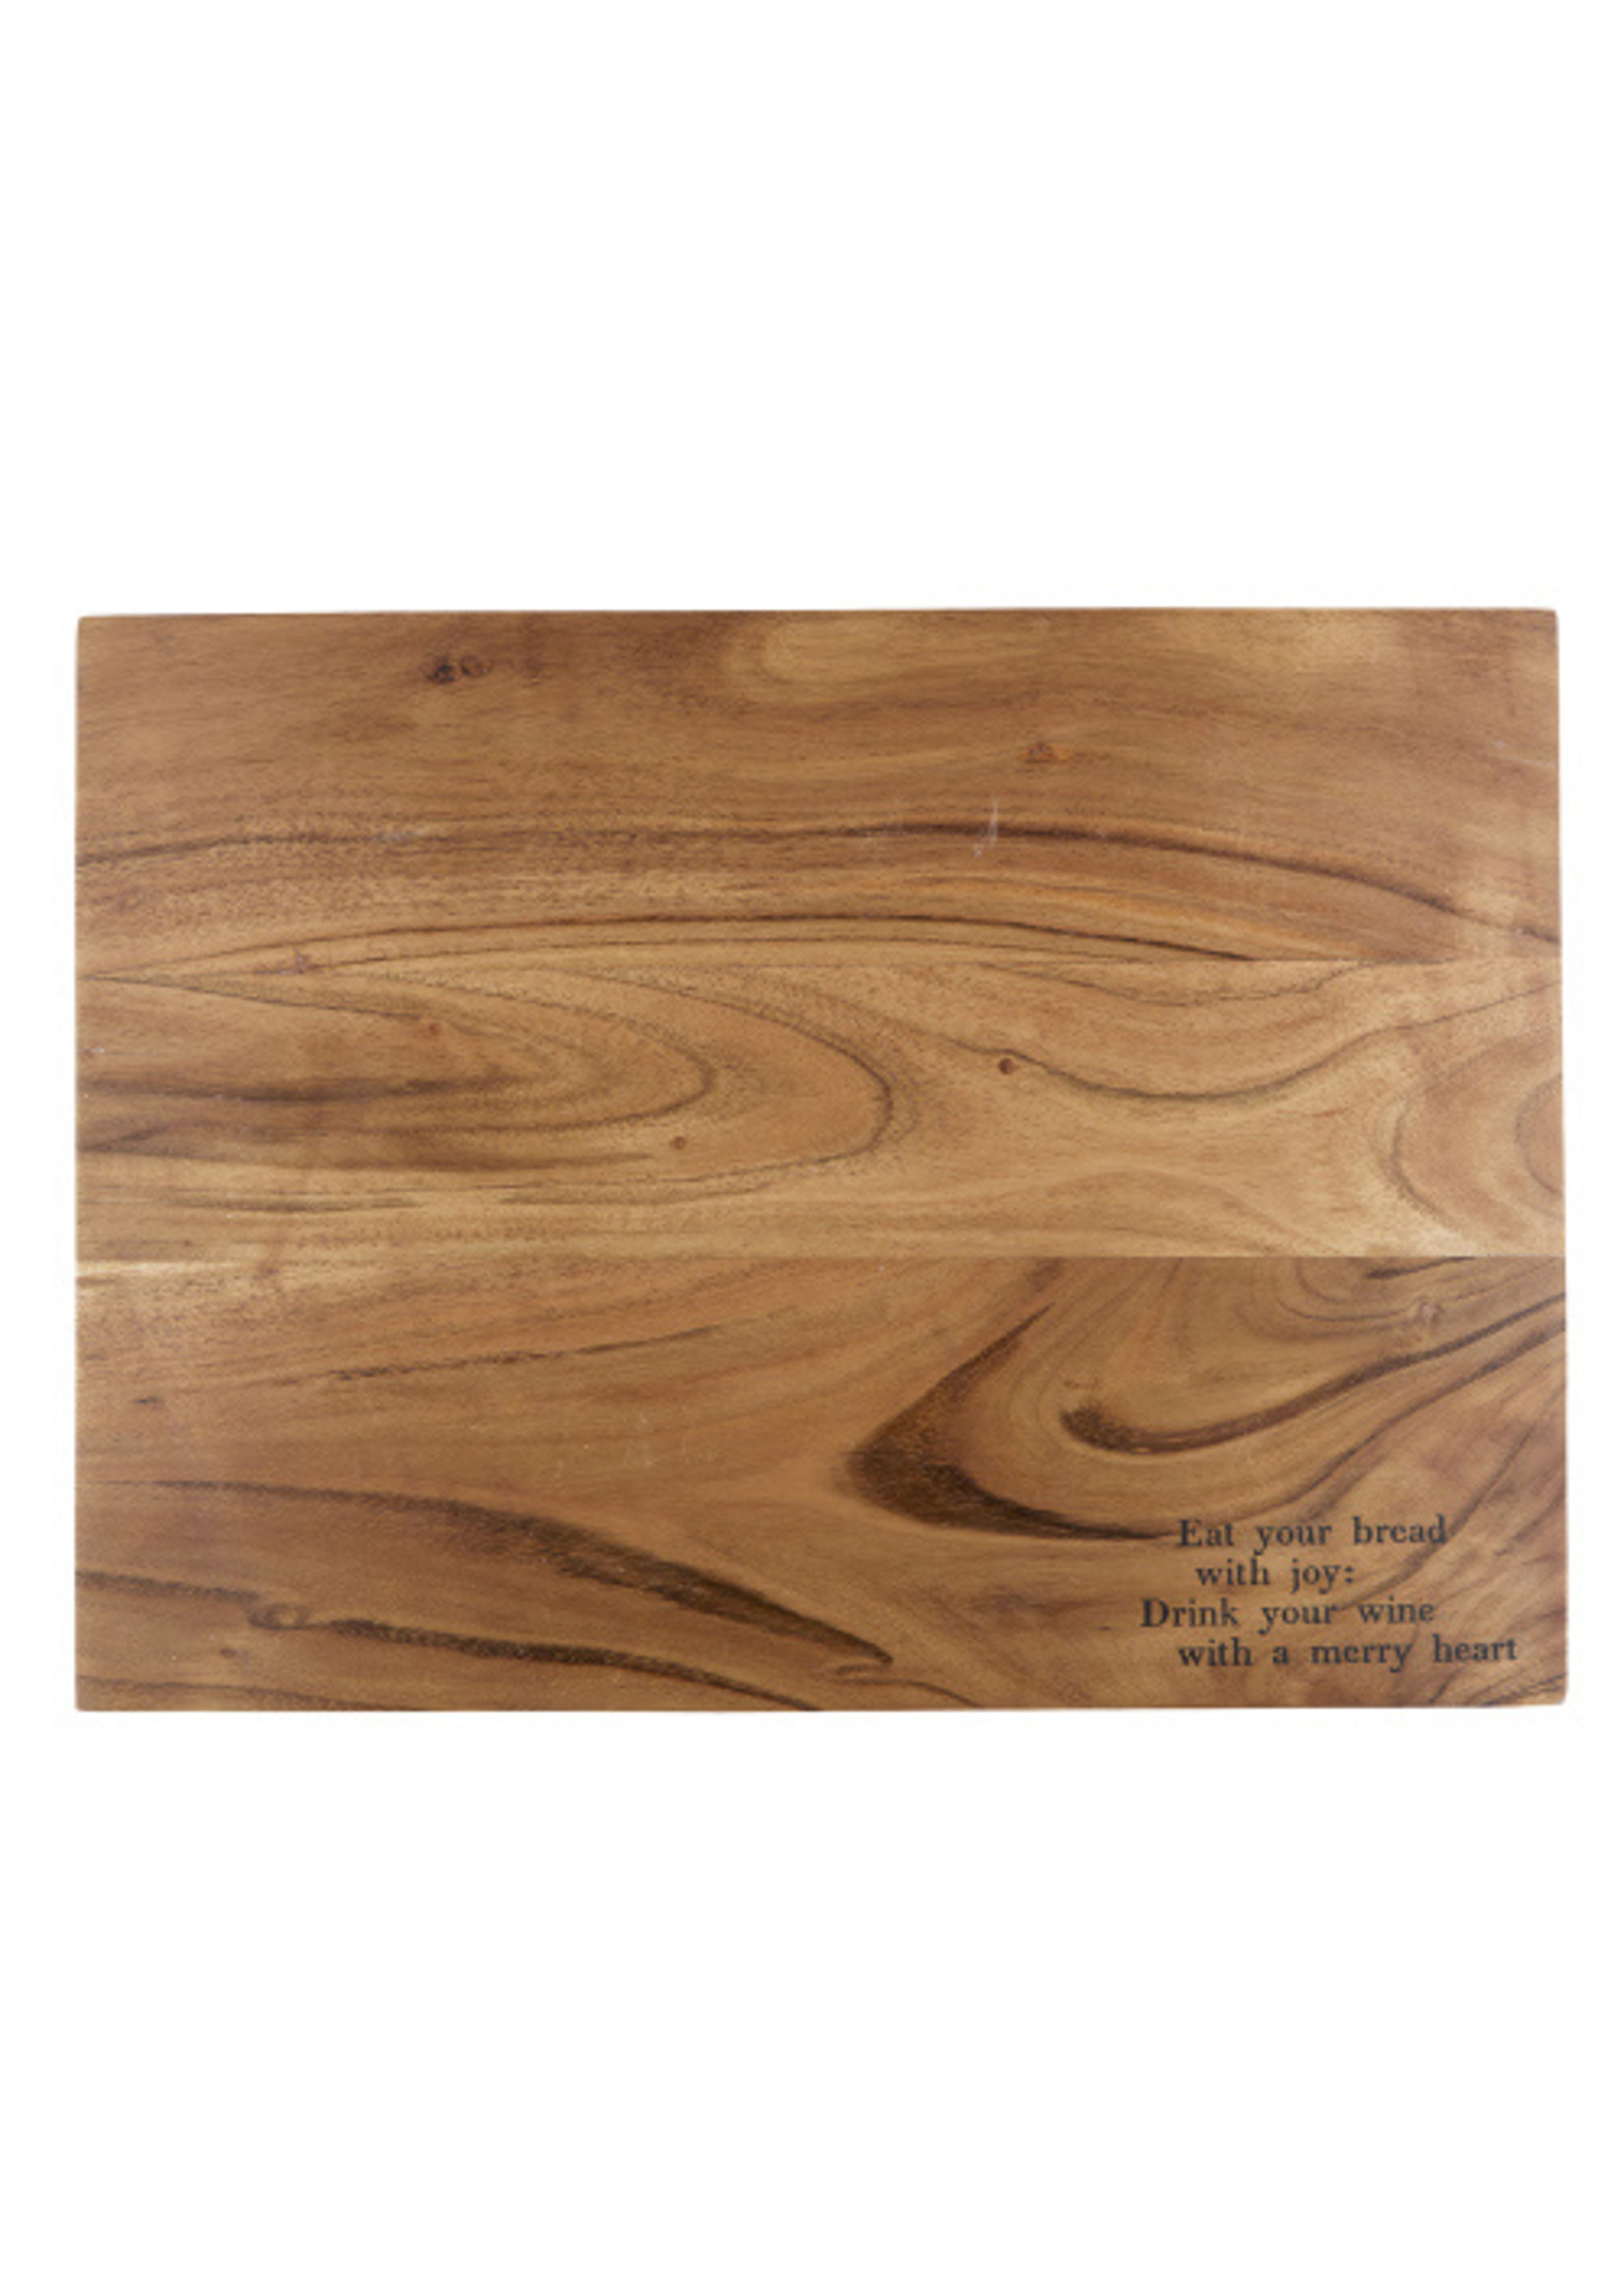 Wood Serving Tray - Eat Bread